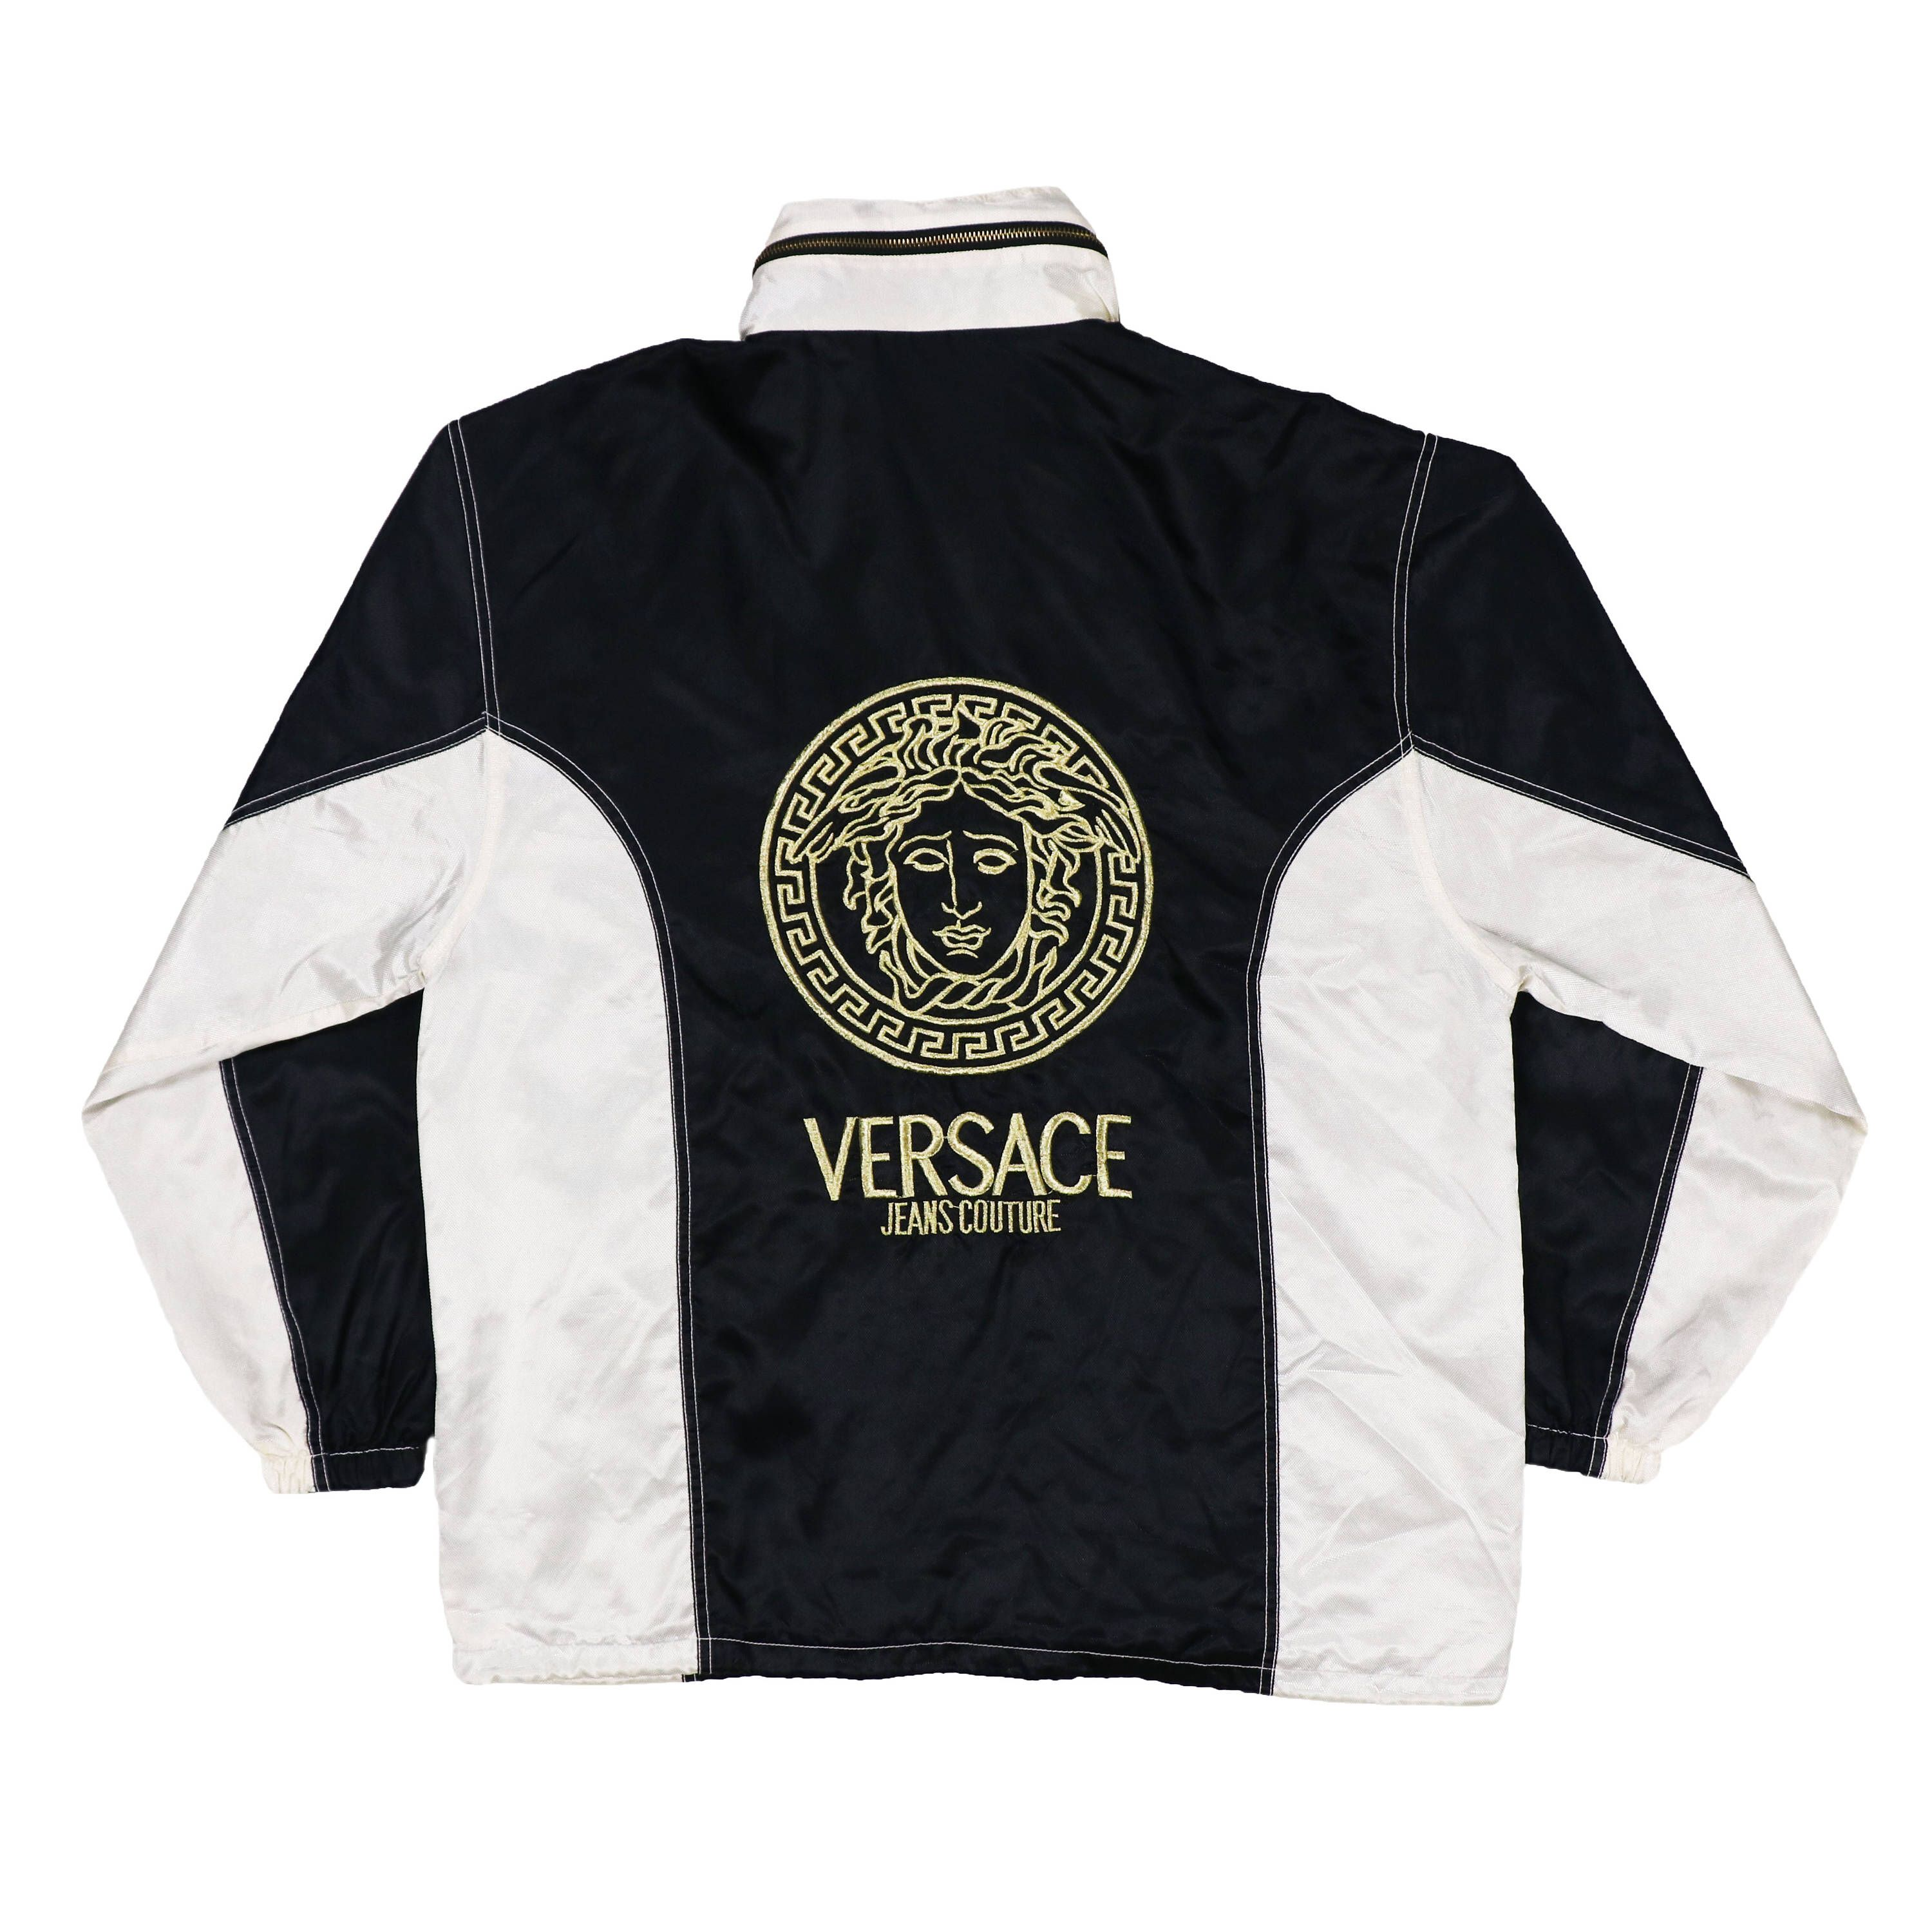 98389773c Excited to share the latest addition to my  etsy shop  Vintage VERSACE Big  logo Windbreaker Jacket Hoodie  clothing  jacket  versacejacket   versacebomber ...